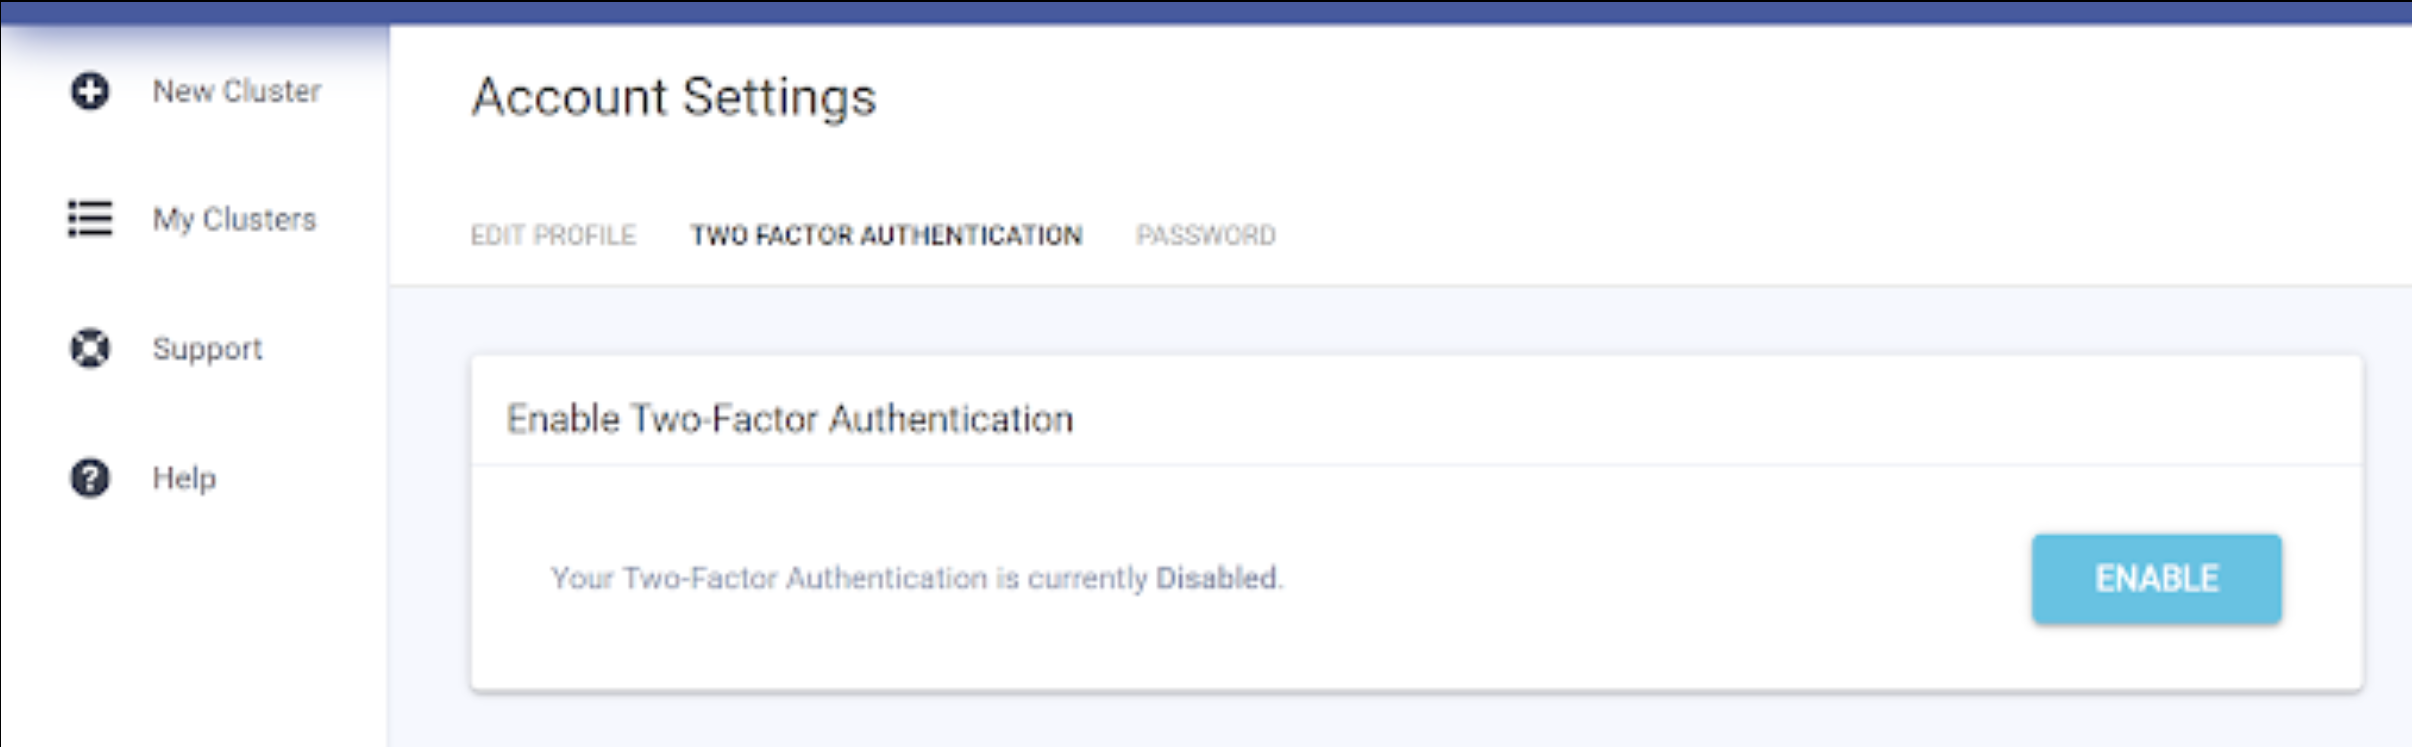 Enabling Two-Factor Authentication (2FA) in Scylla Cloud